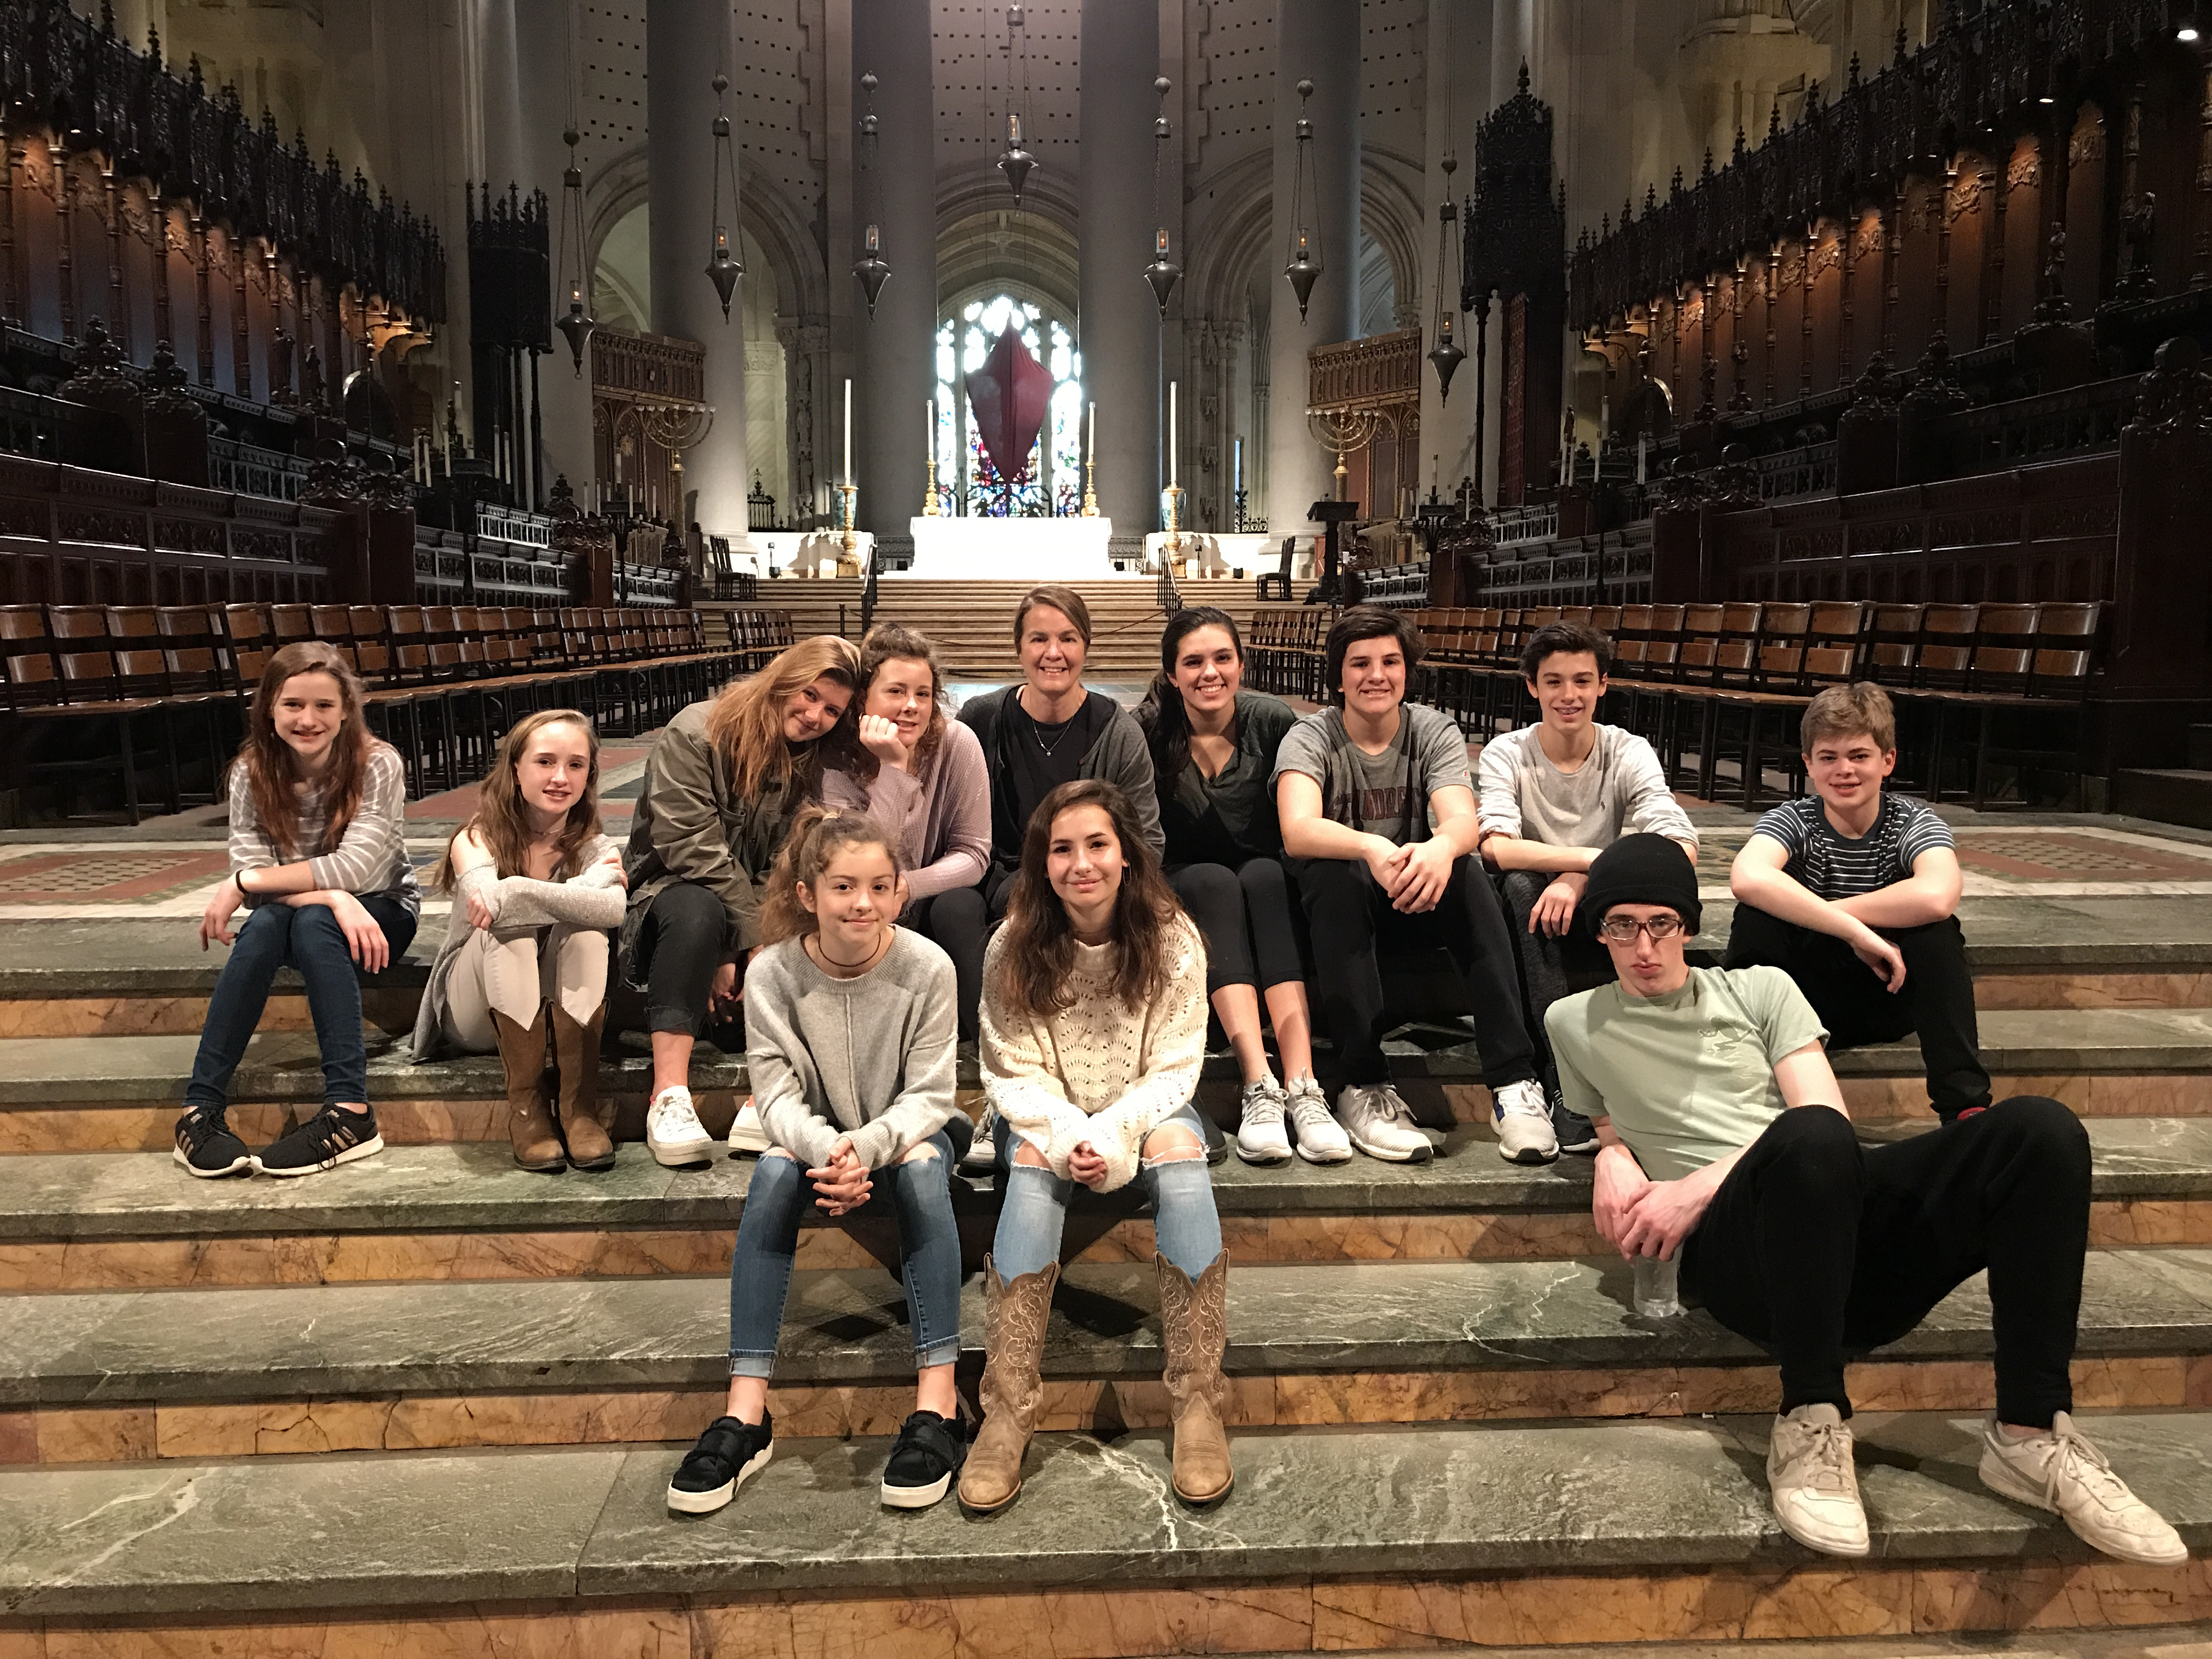 Janet Legro '85 with a youth group trip to New York City